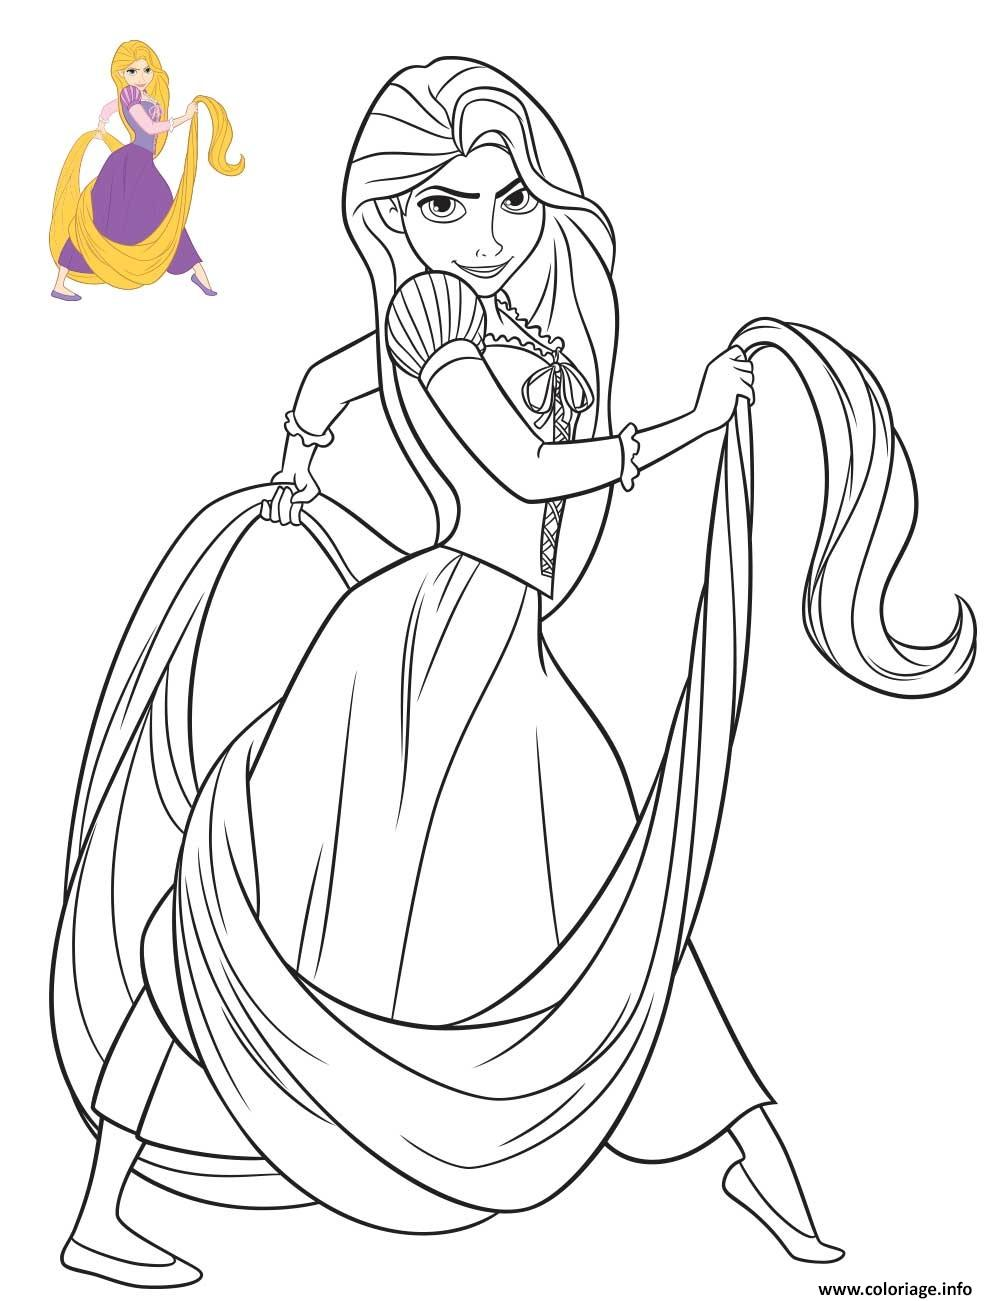 Coloriage princesse disney raiponce dessin - Coloriages princesse ...